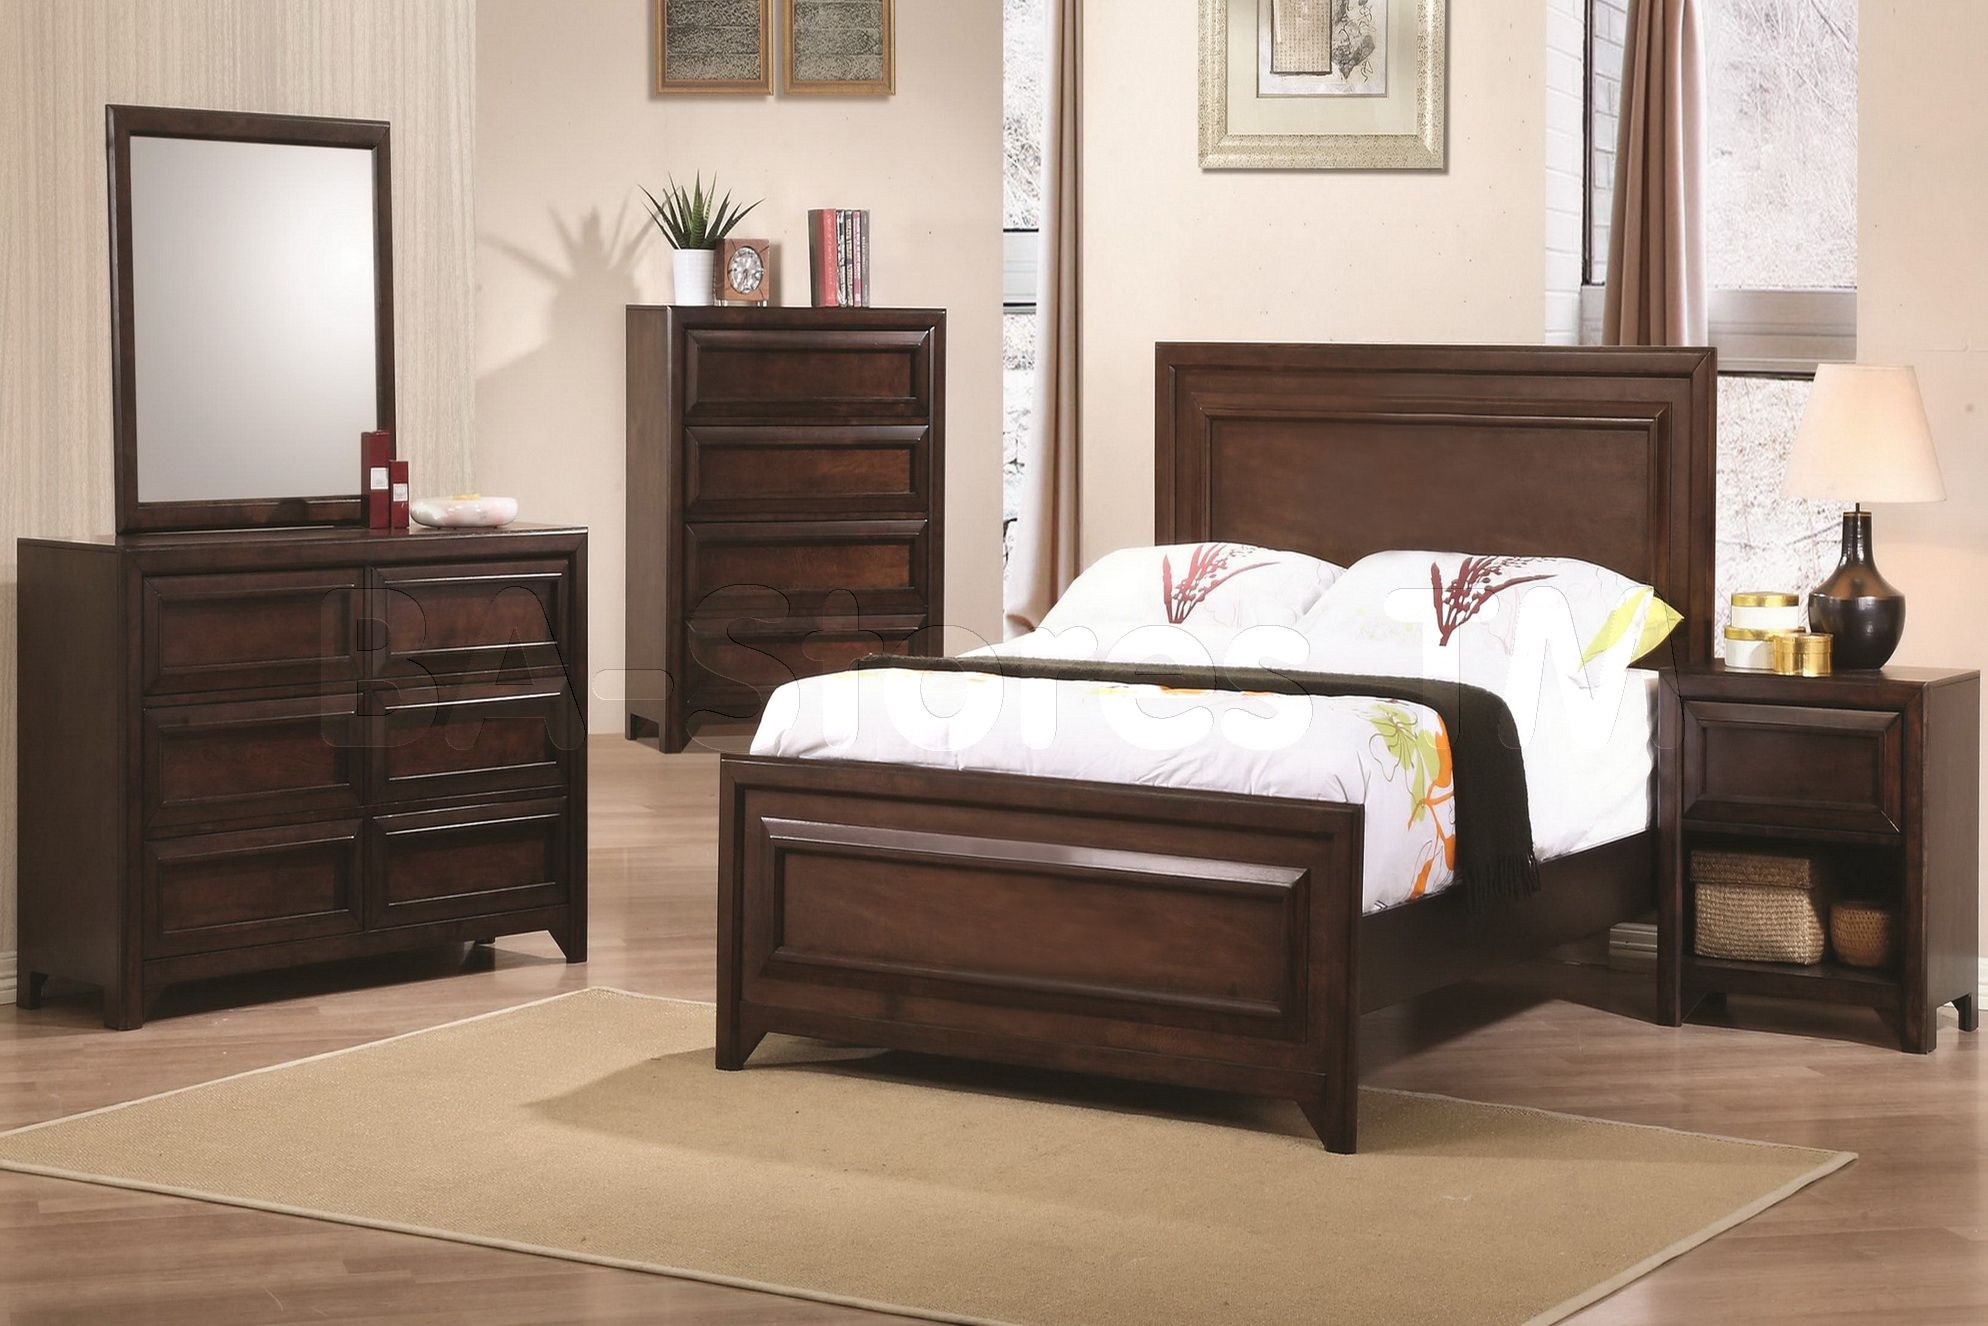 twin bedroom furniture sets for adults bedroom sets pinterest